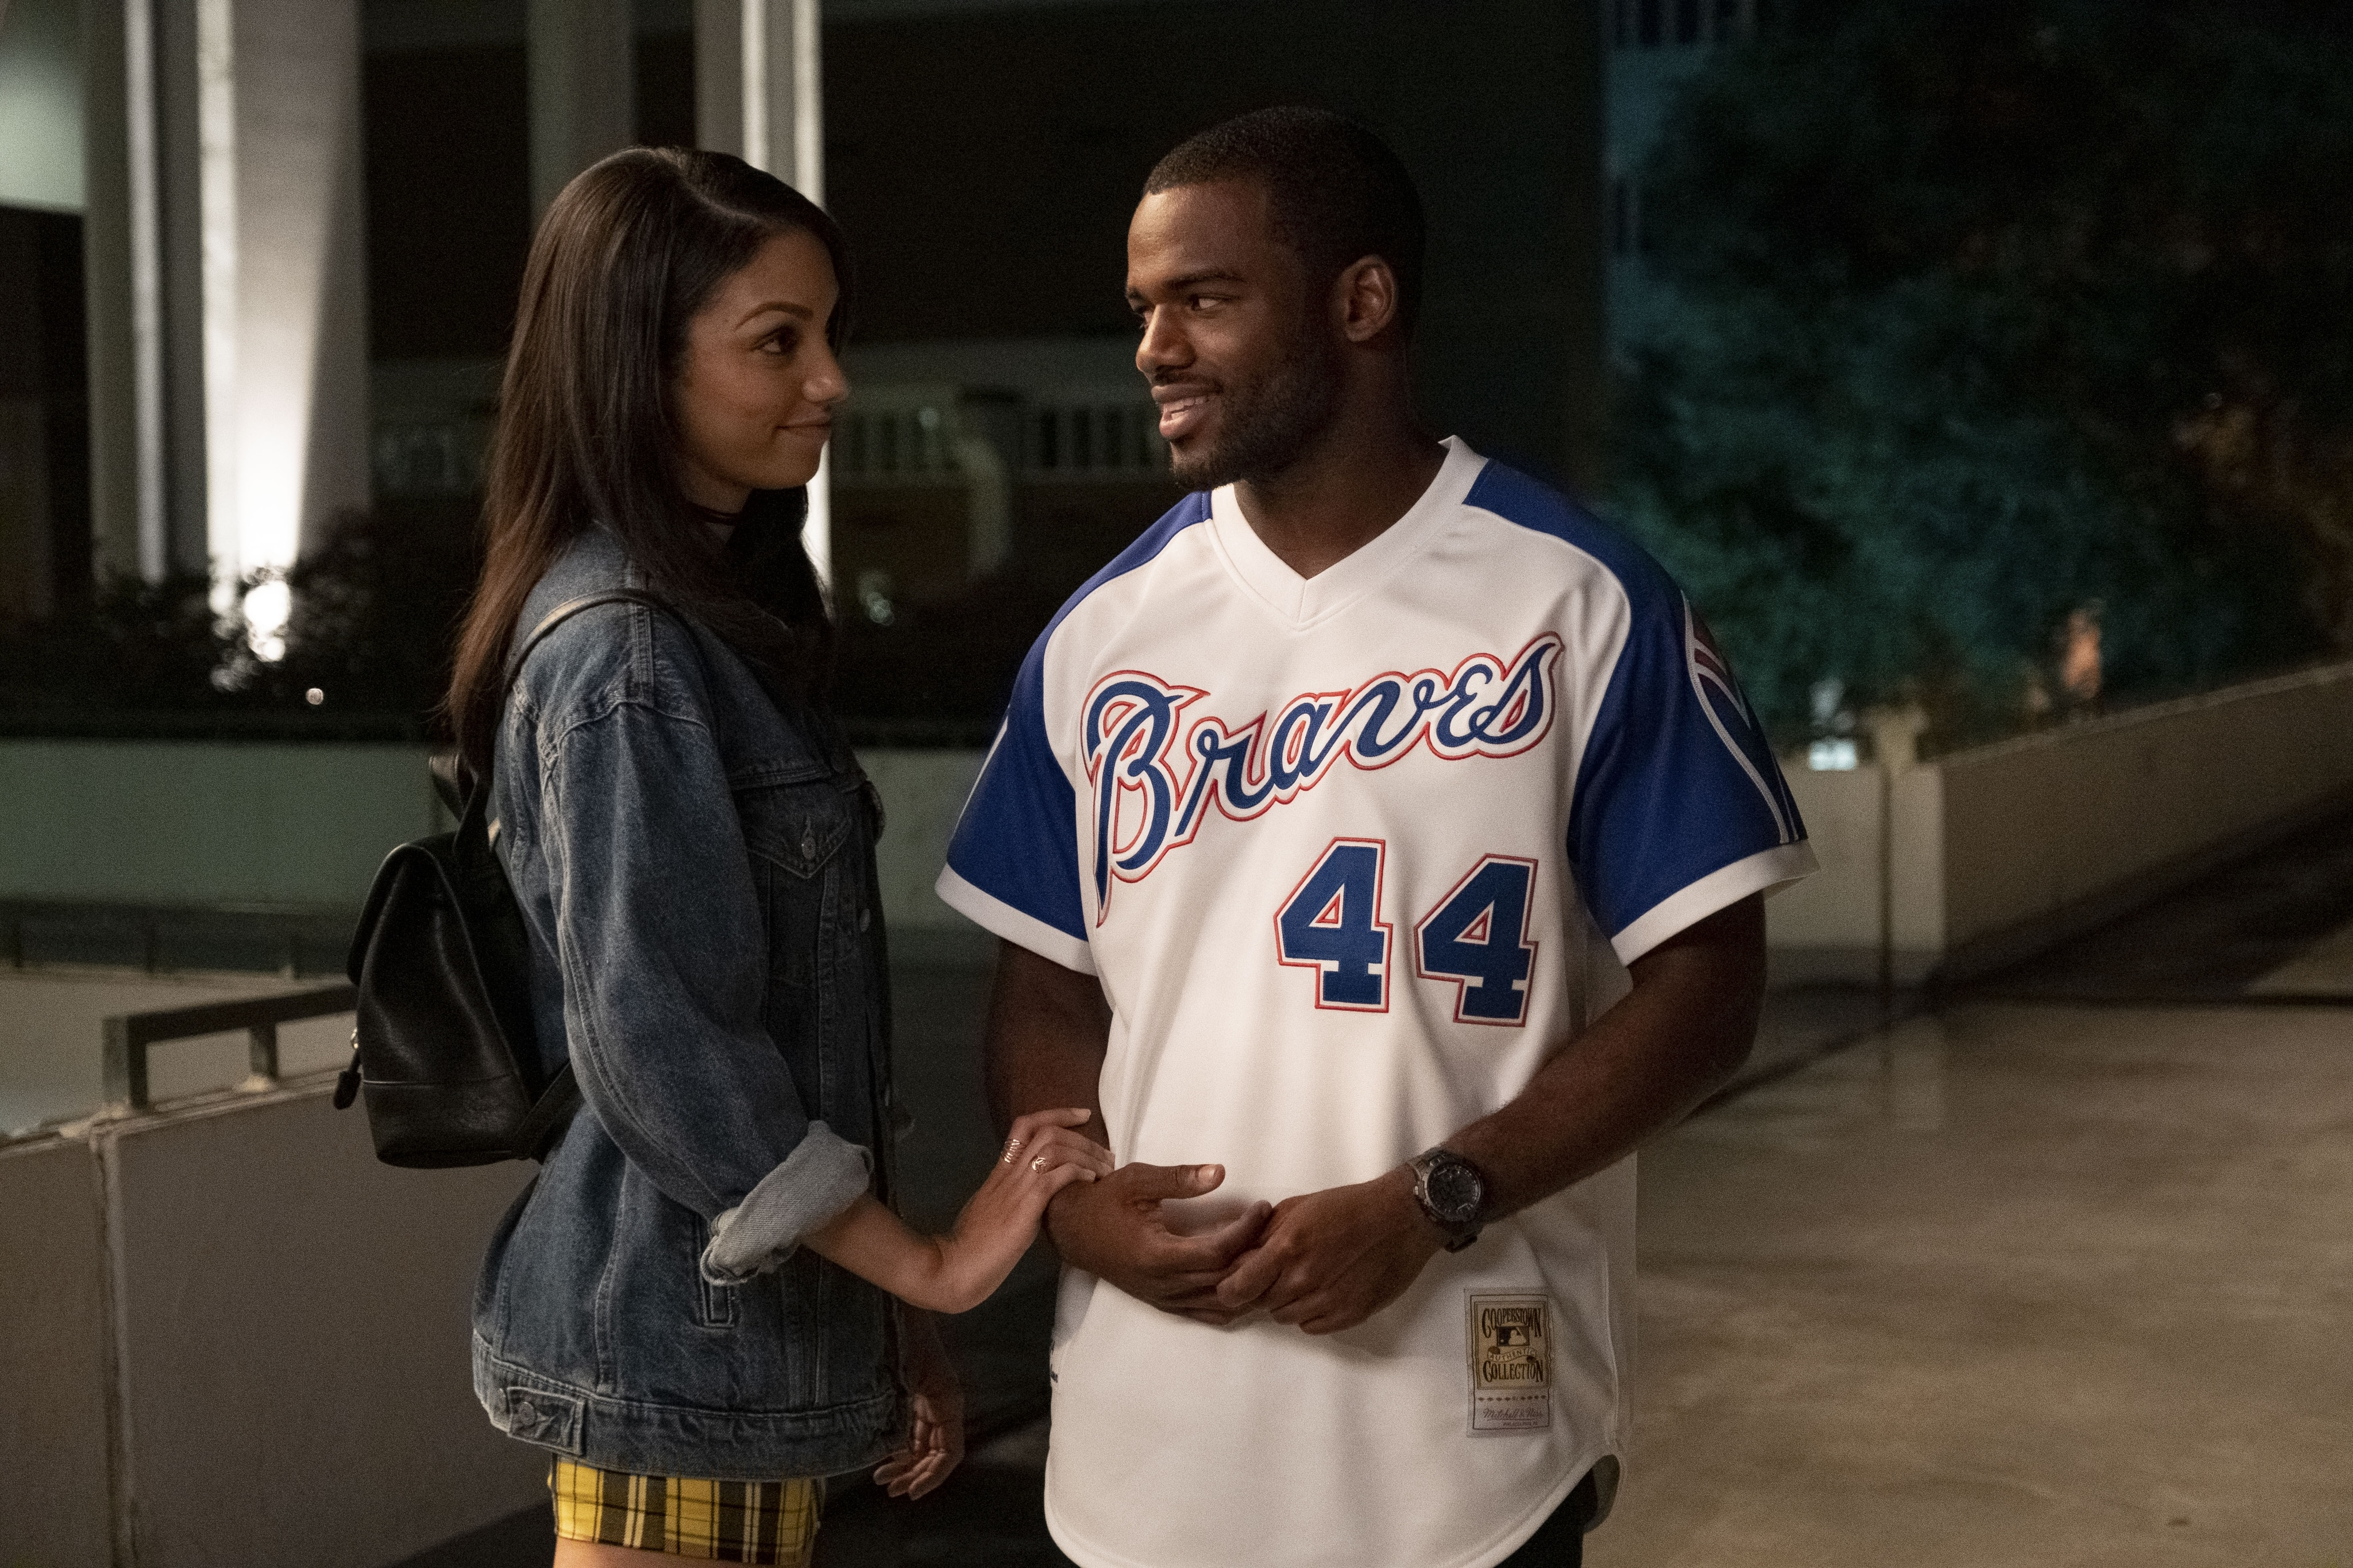 Corinne Foxx and Jay Reeves